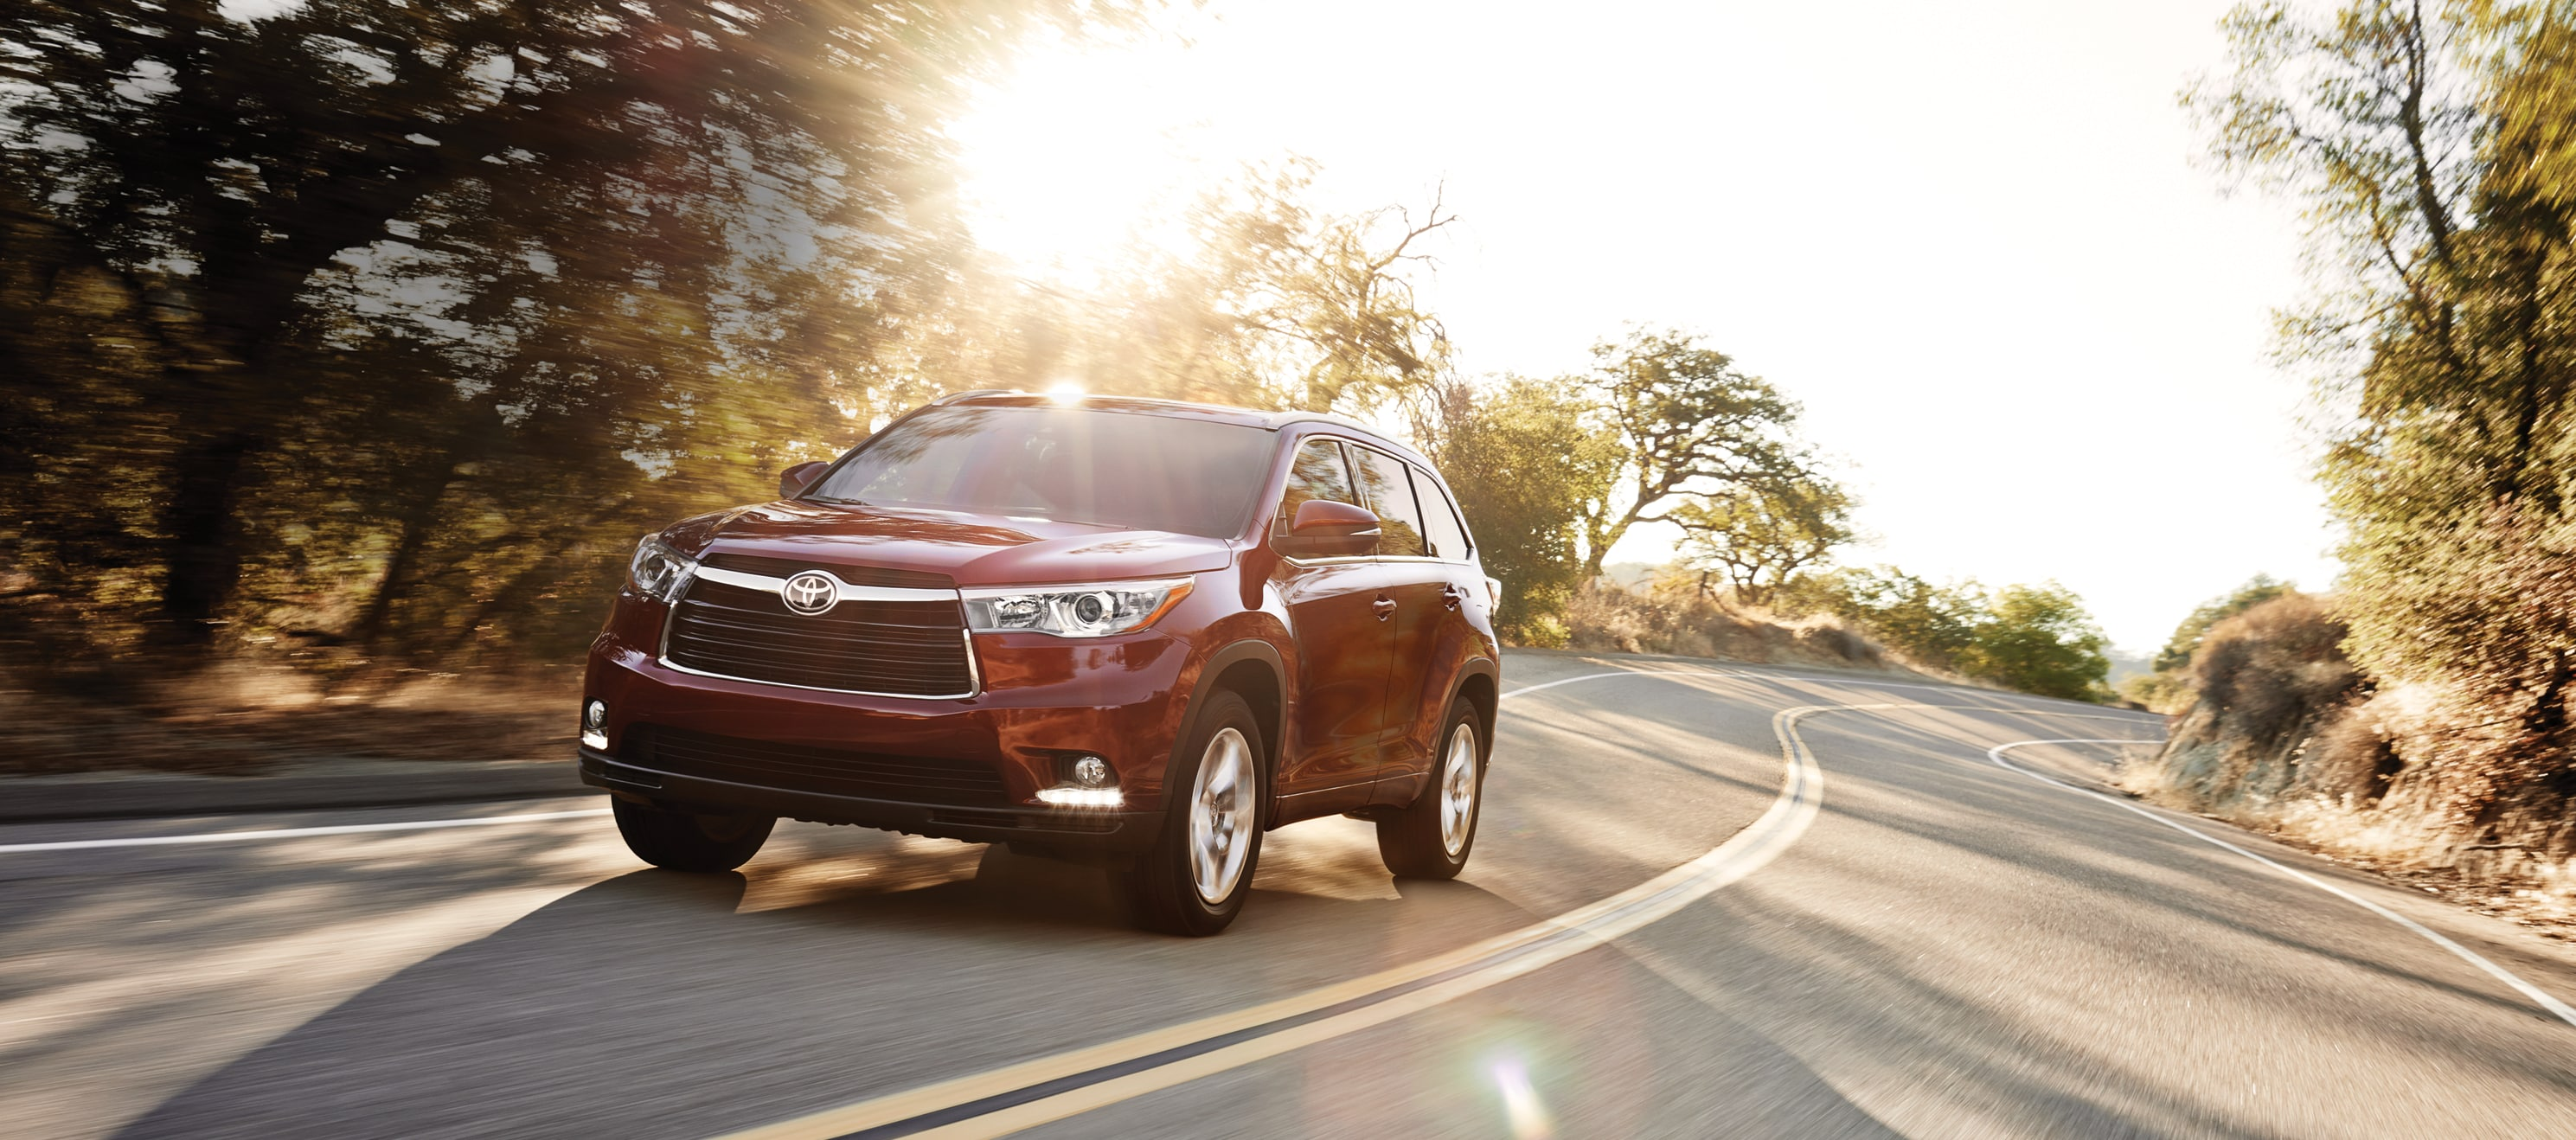 Toyota Highlander Owners Manual: List of storage features